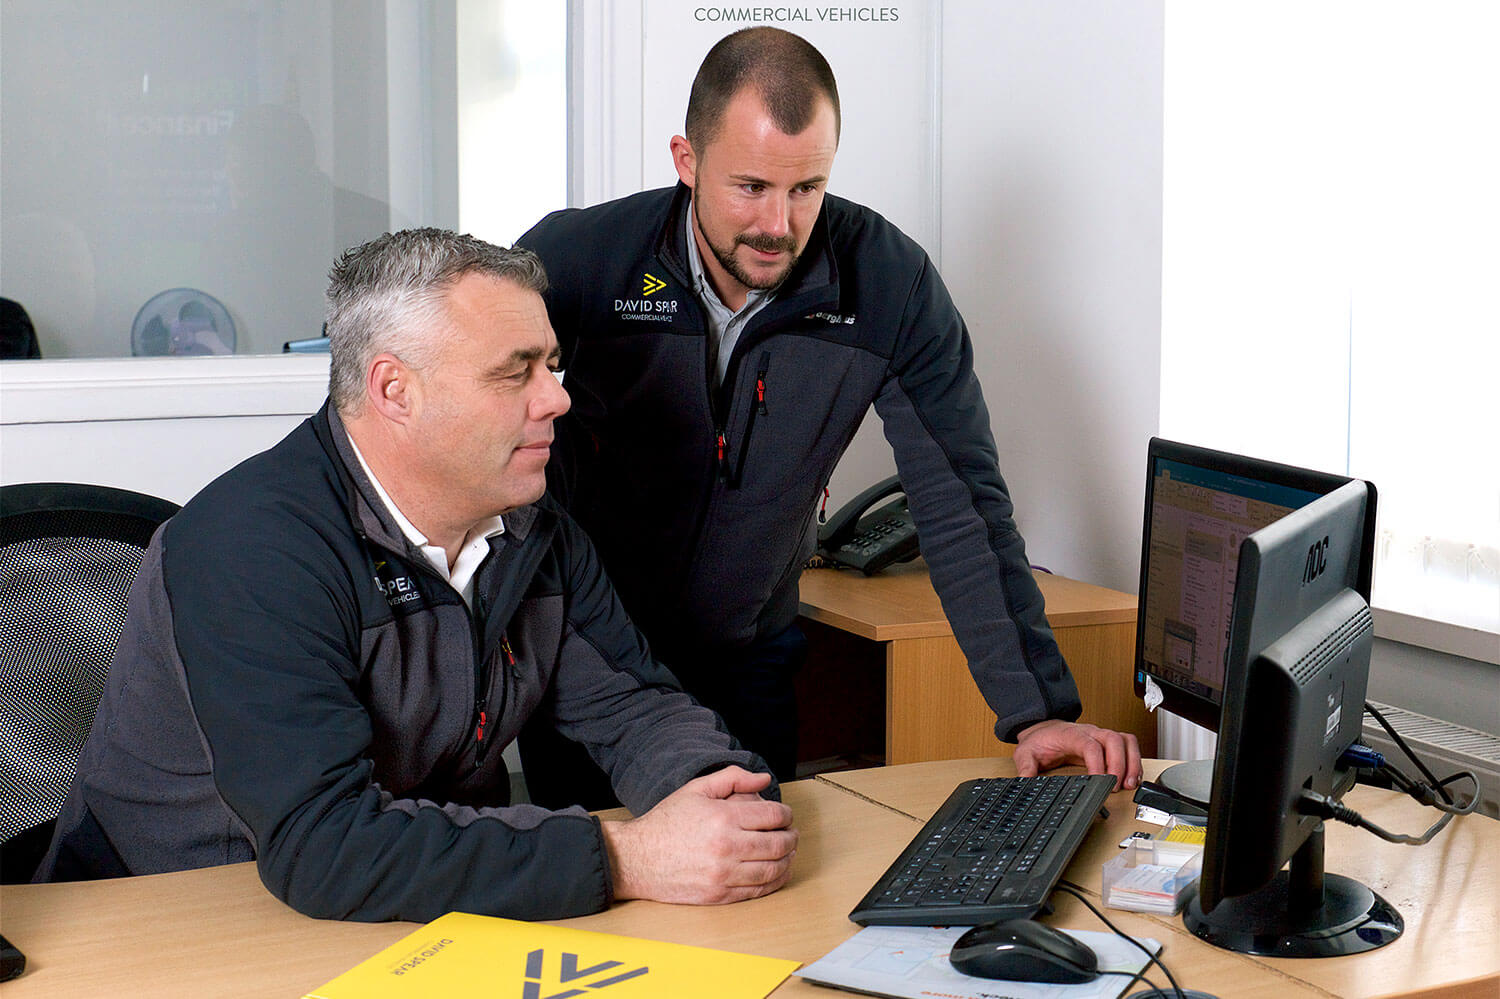 Secure Order and Payments on Commercial Vehicles